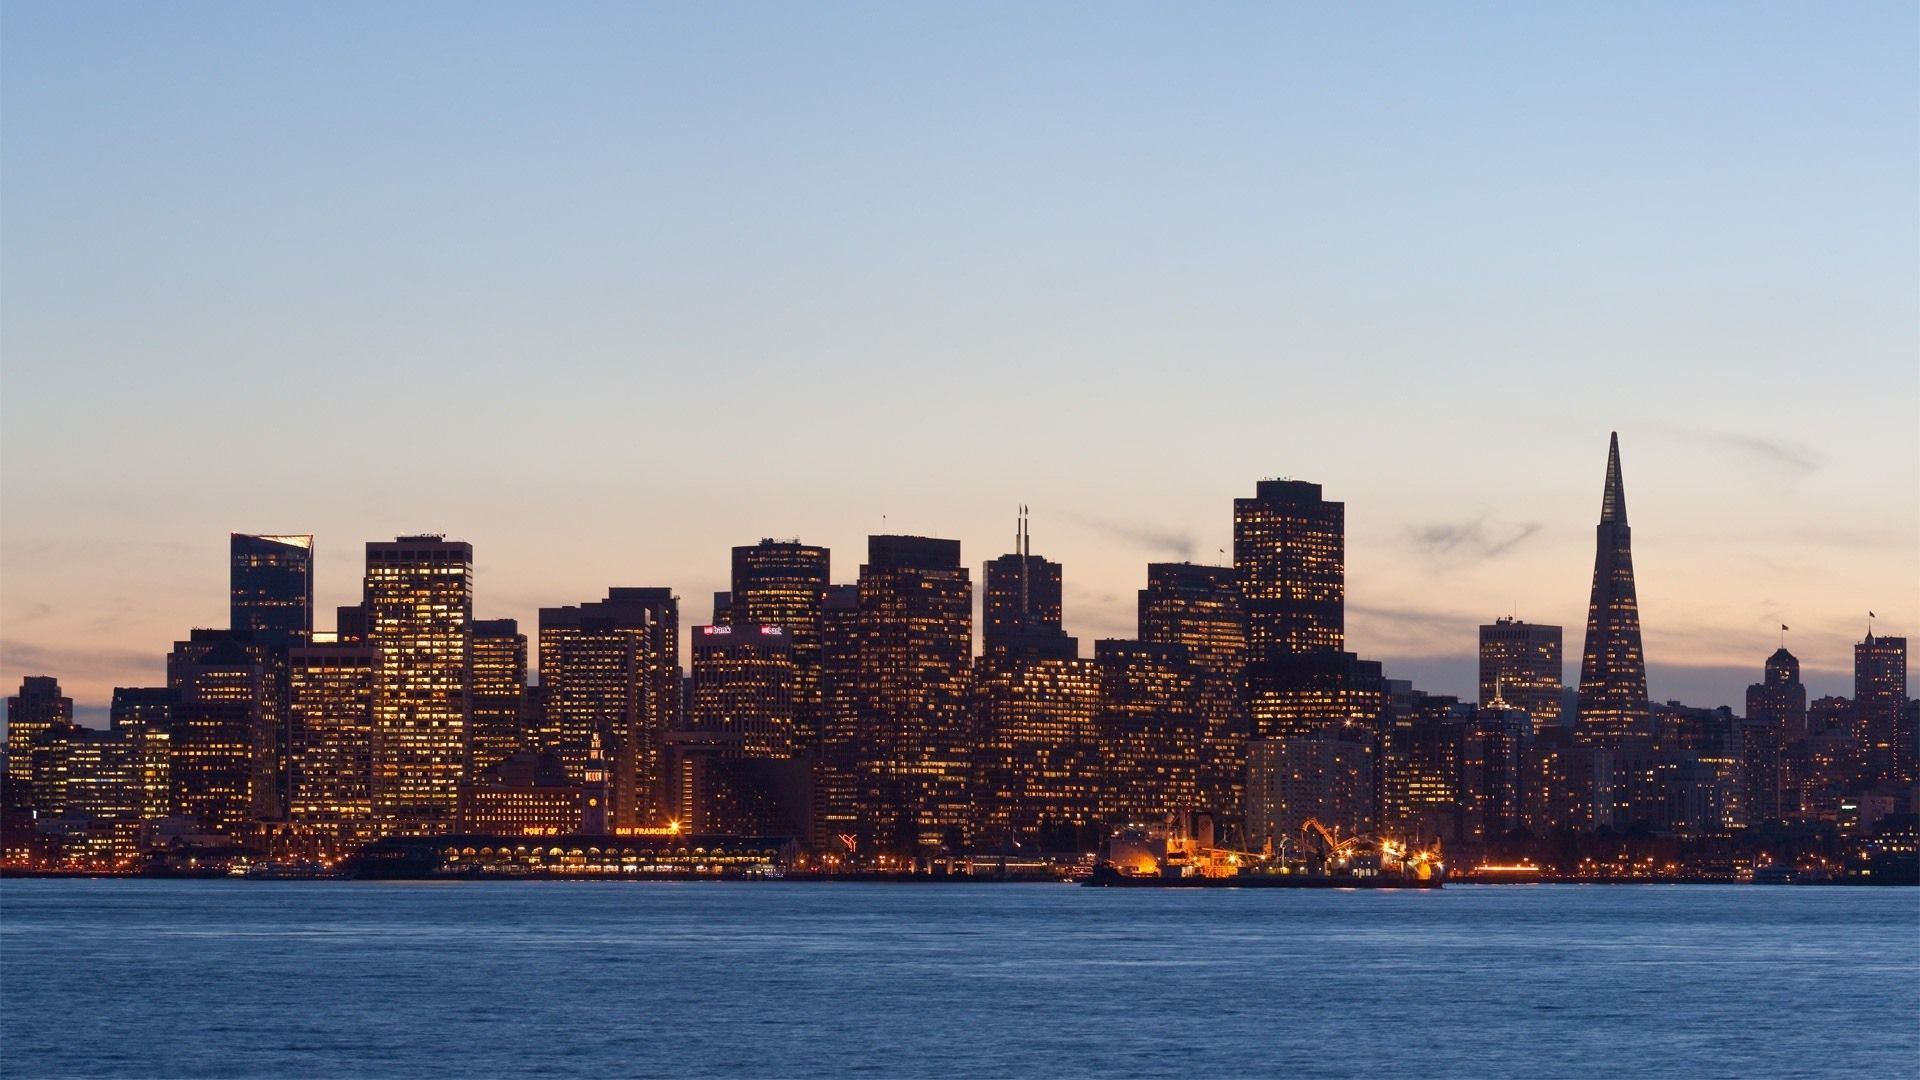 San Francisco Downtown at Sunset on Fotopedia